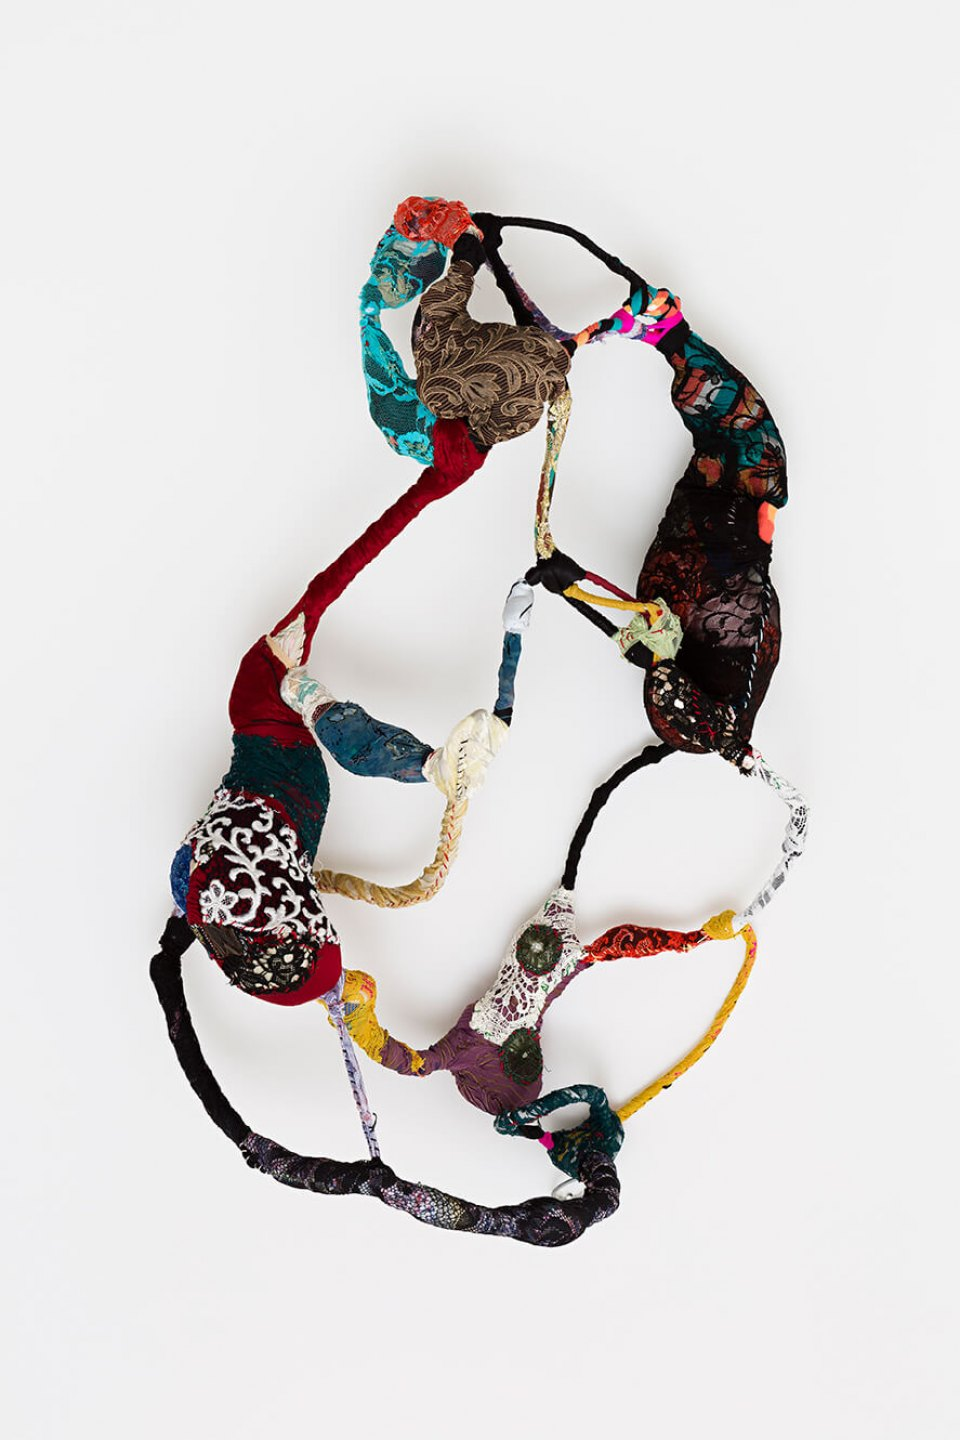 Sonia Gomes, <em>untitled, from Torção series</em>, 2015, sewing, moorings and different fabrics on wire, 90 × 60 × 35 cm - Mendes Wood DM